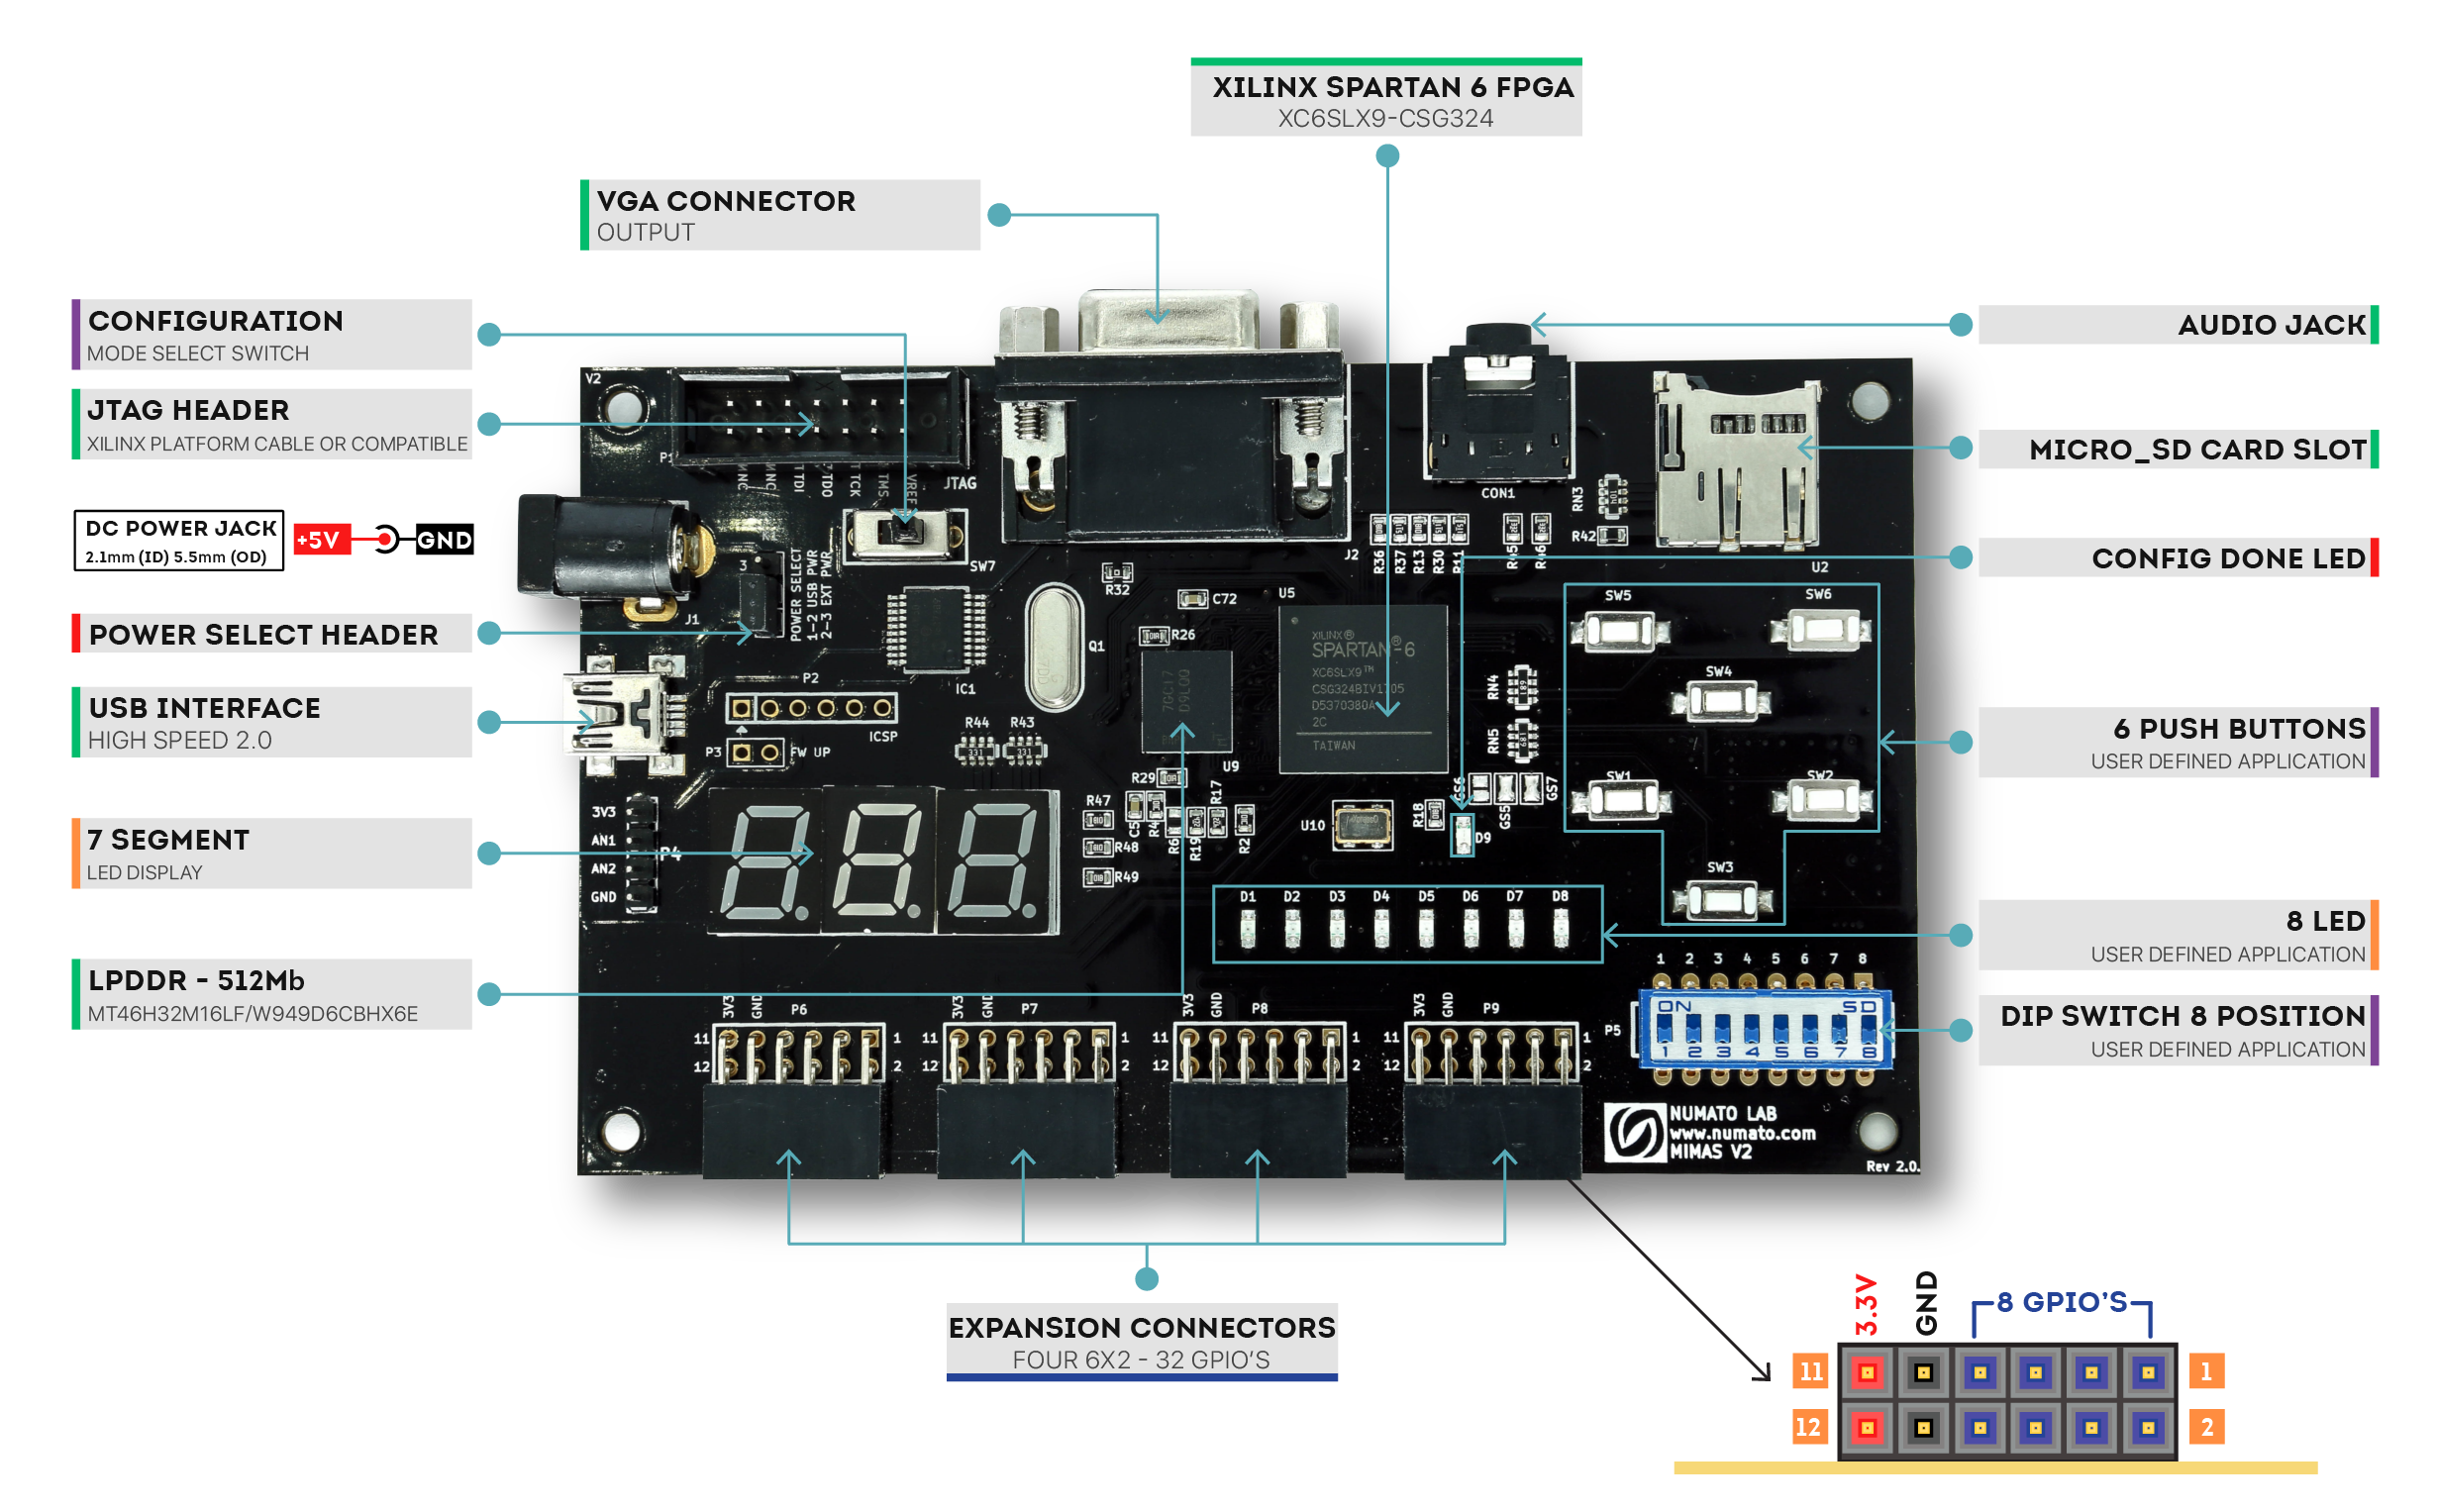 Mimas V2 Spartan 6 FPGA Board - Block Diagram